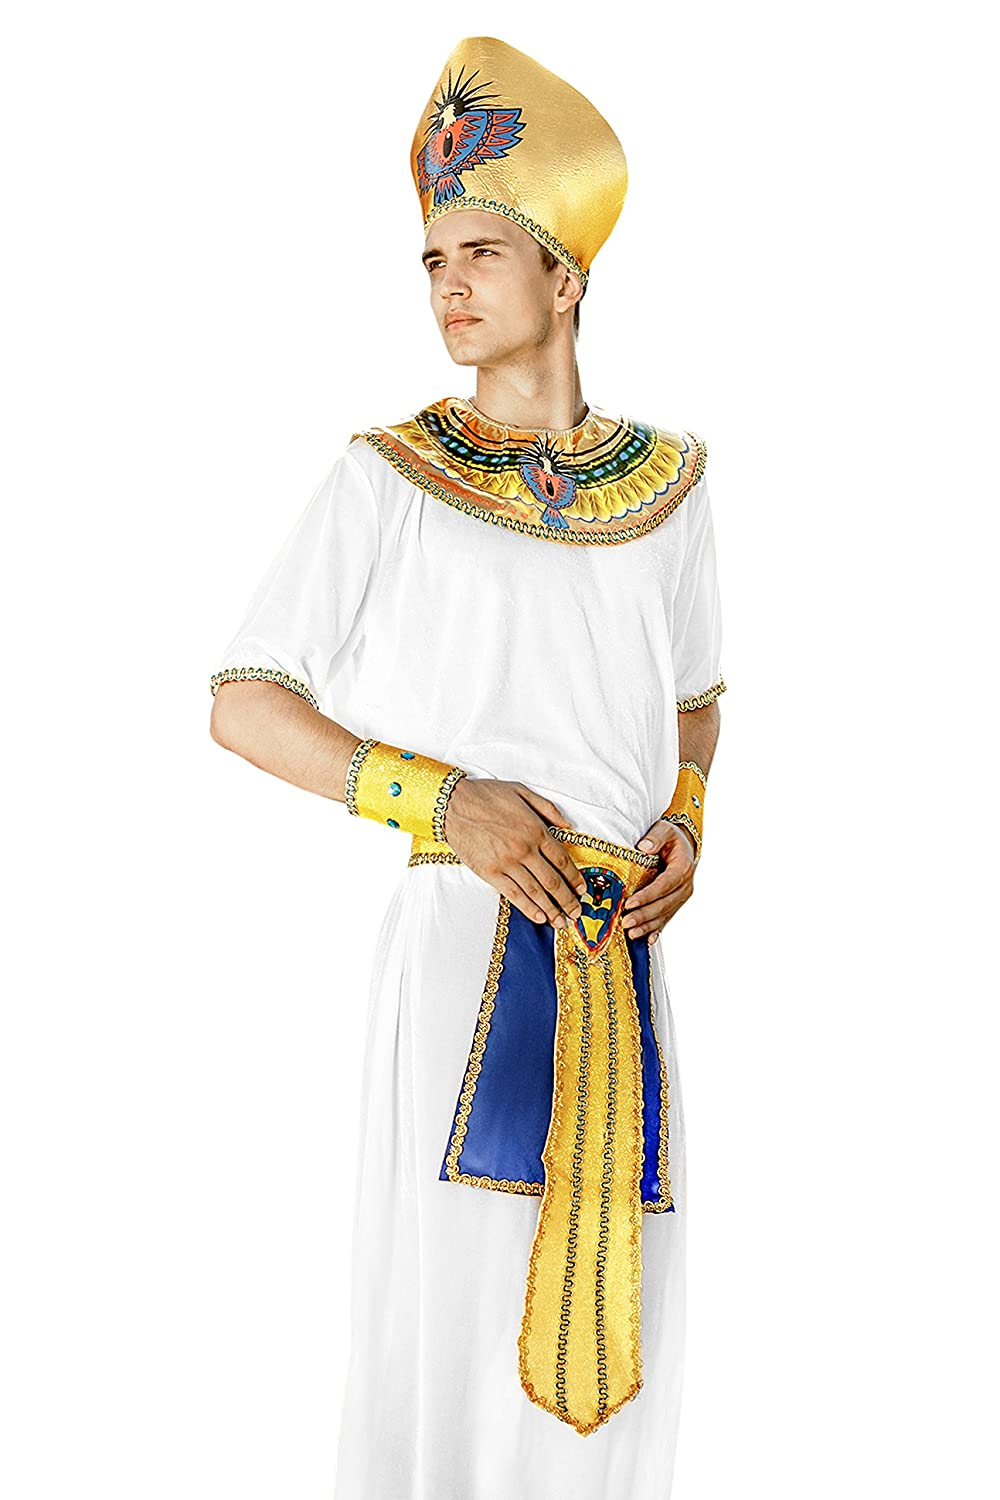 Amazon.com Adult Men Egyptian Pharaoh Halloween Costume King of Egypt Dress Up u0026 Role Play (One Size - Fits All white gold) Clothing  sc 1 st  Amazon.com & Amazon.com: Adult Men Egyptian Pharaoh Halloween Costume King of ...